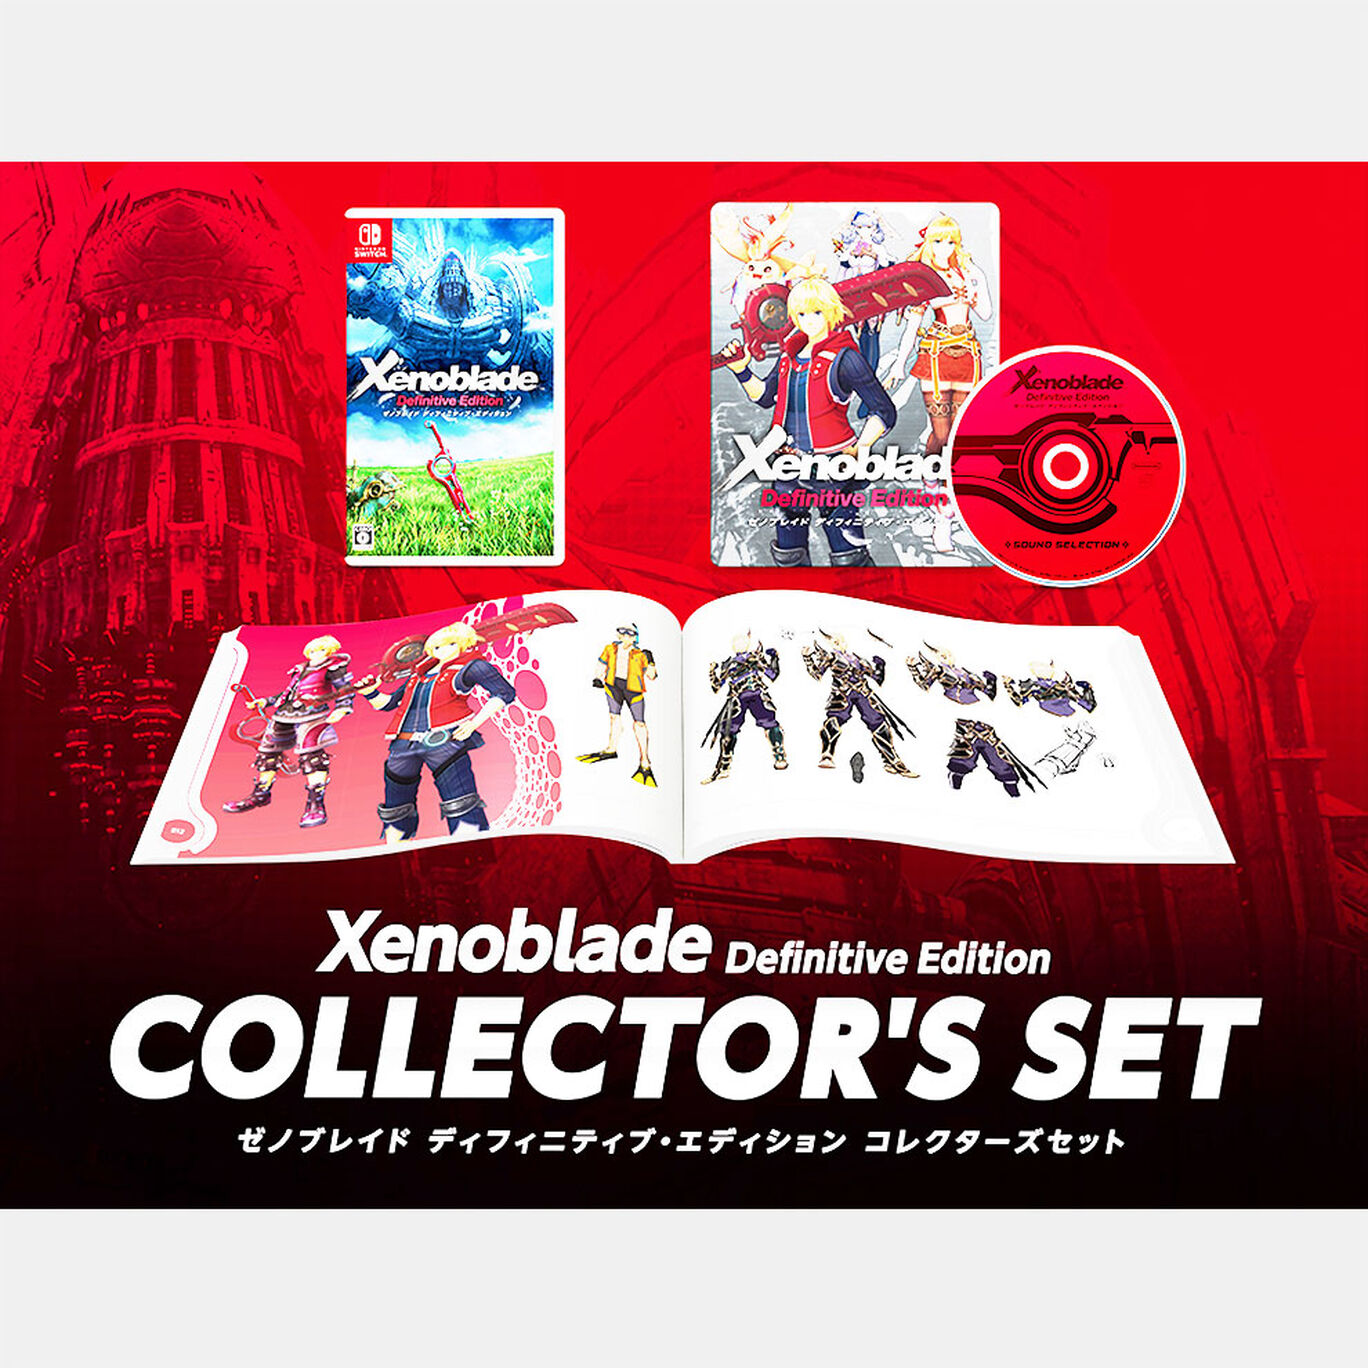 Xenoblade Definitive Edition Collector's Set(ゲームカードなし)※特典のみ